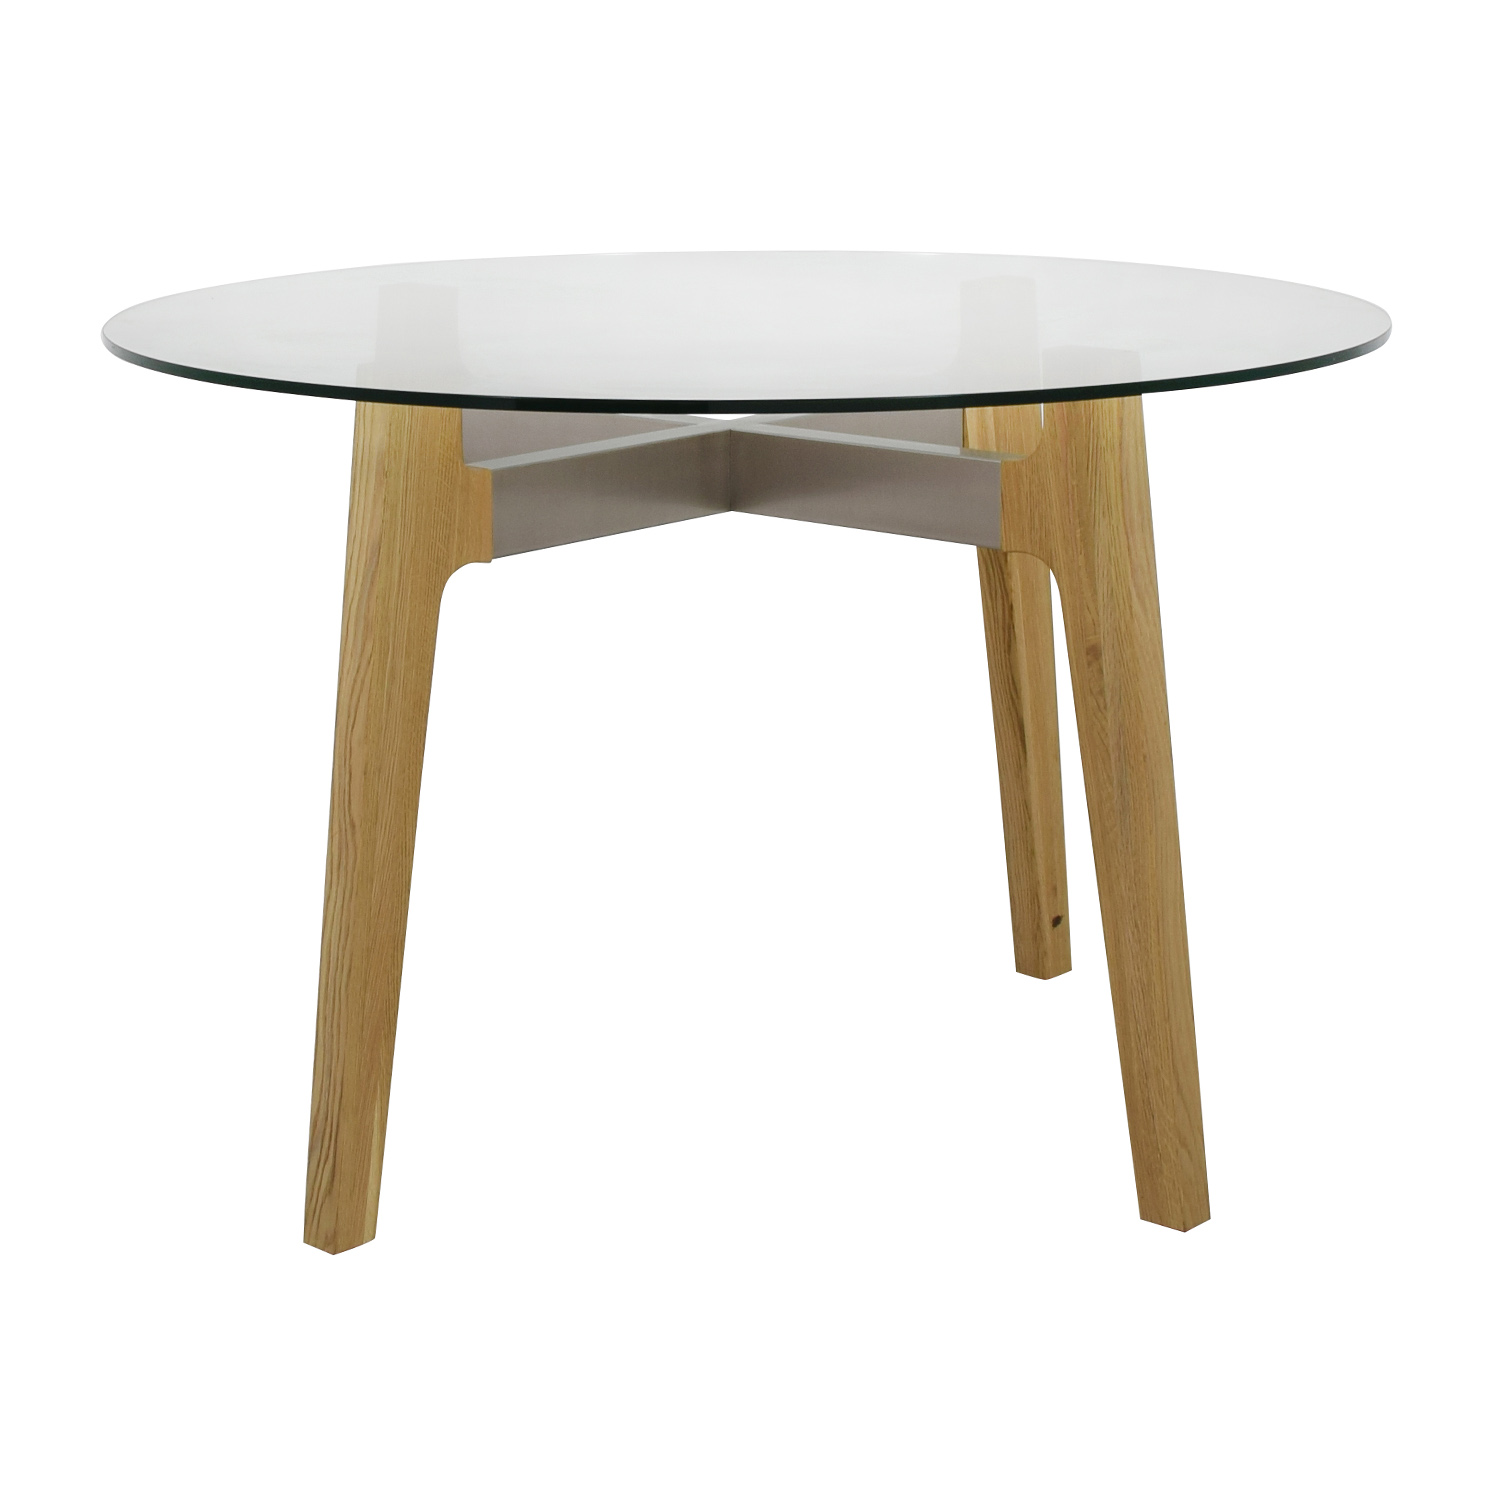 Admirable 50 Off Cb2 Cb2 Round Brace Dining Table Tables Caraccident5 Cool Chair Designs And Ideas Caraccident5Info